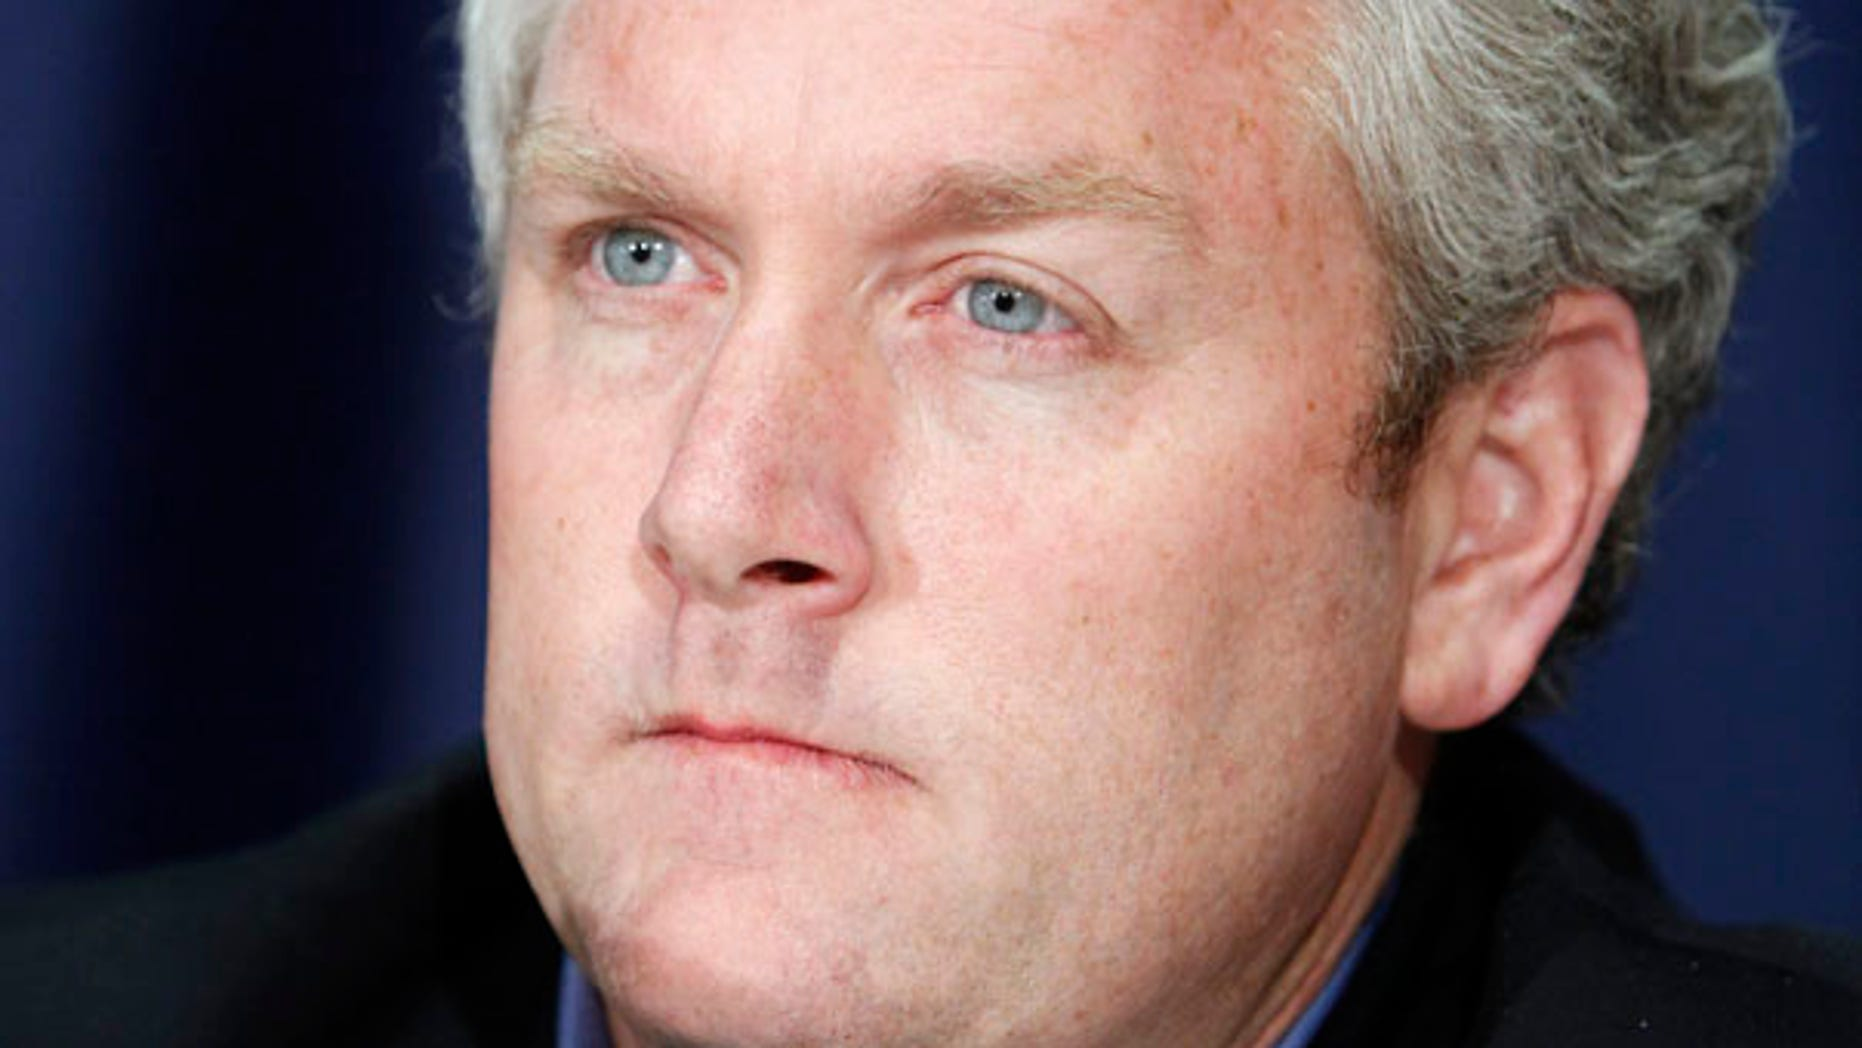 FILE: Conservative blogger Andrew Breitbart